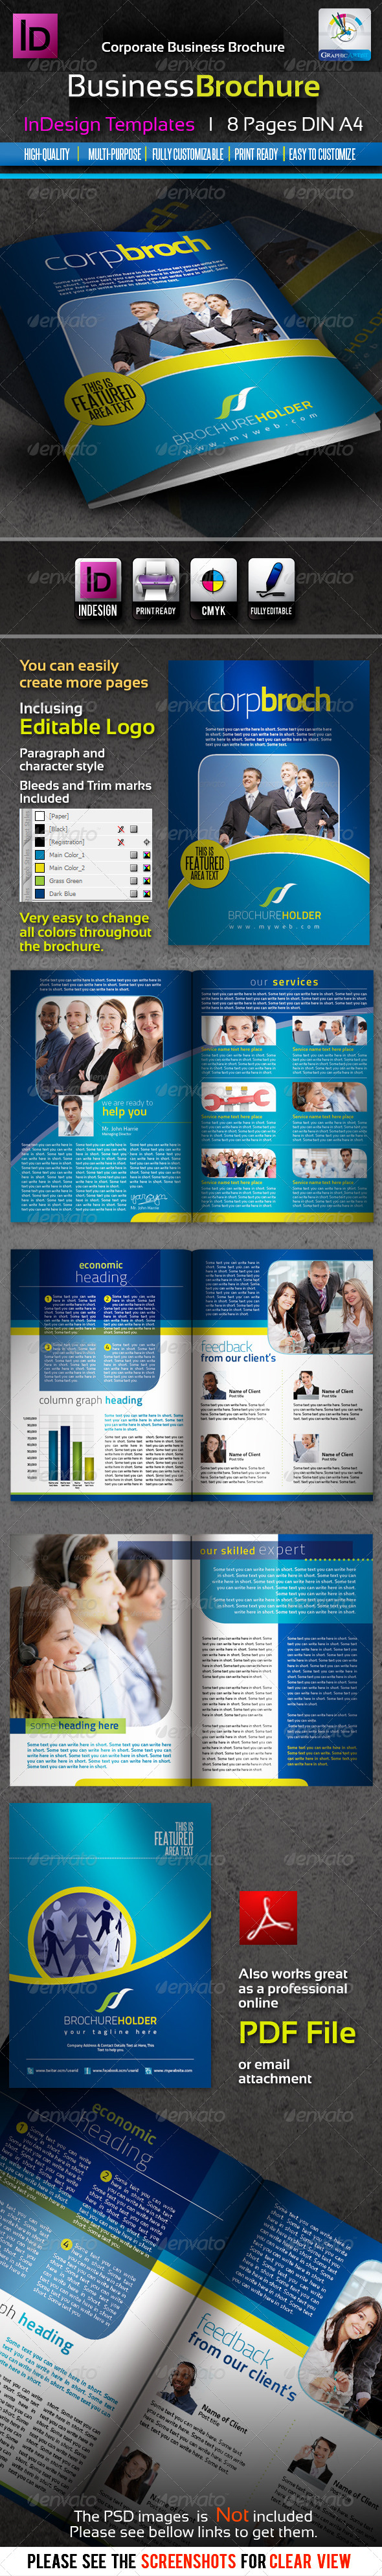 GraphicRiver Corporate Business InDesign Brochure 8pages 1911081